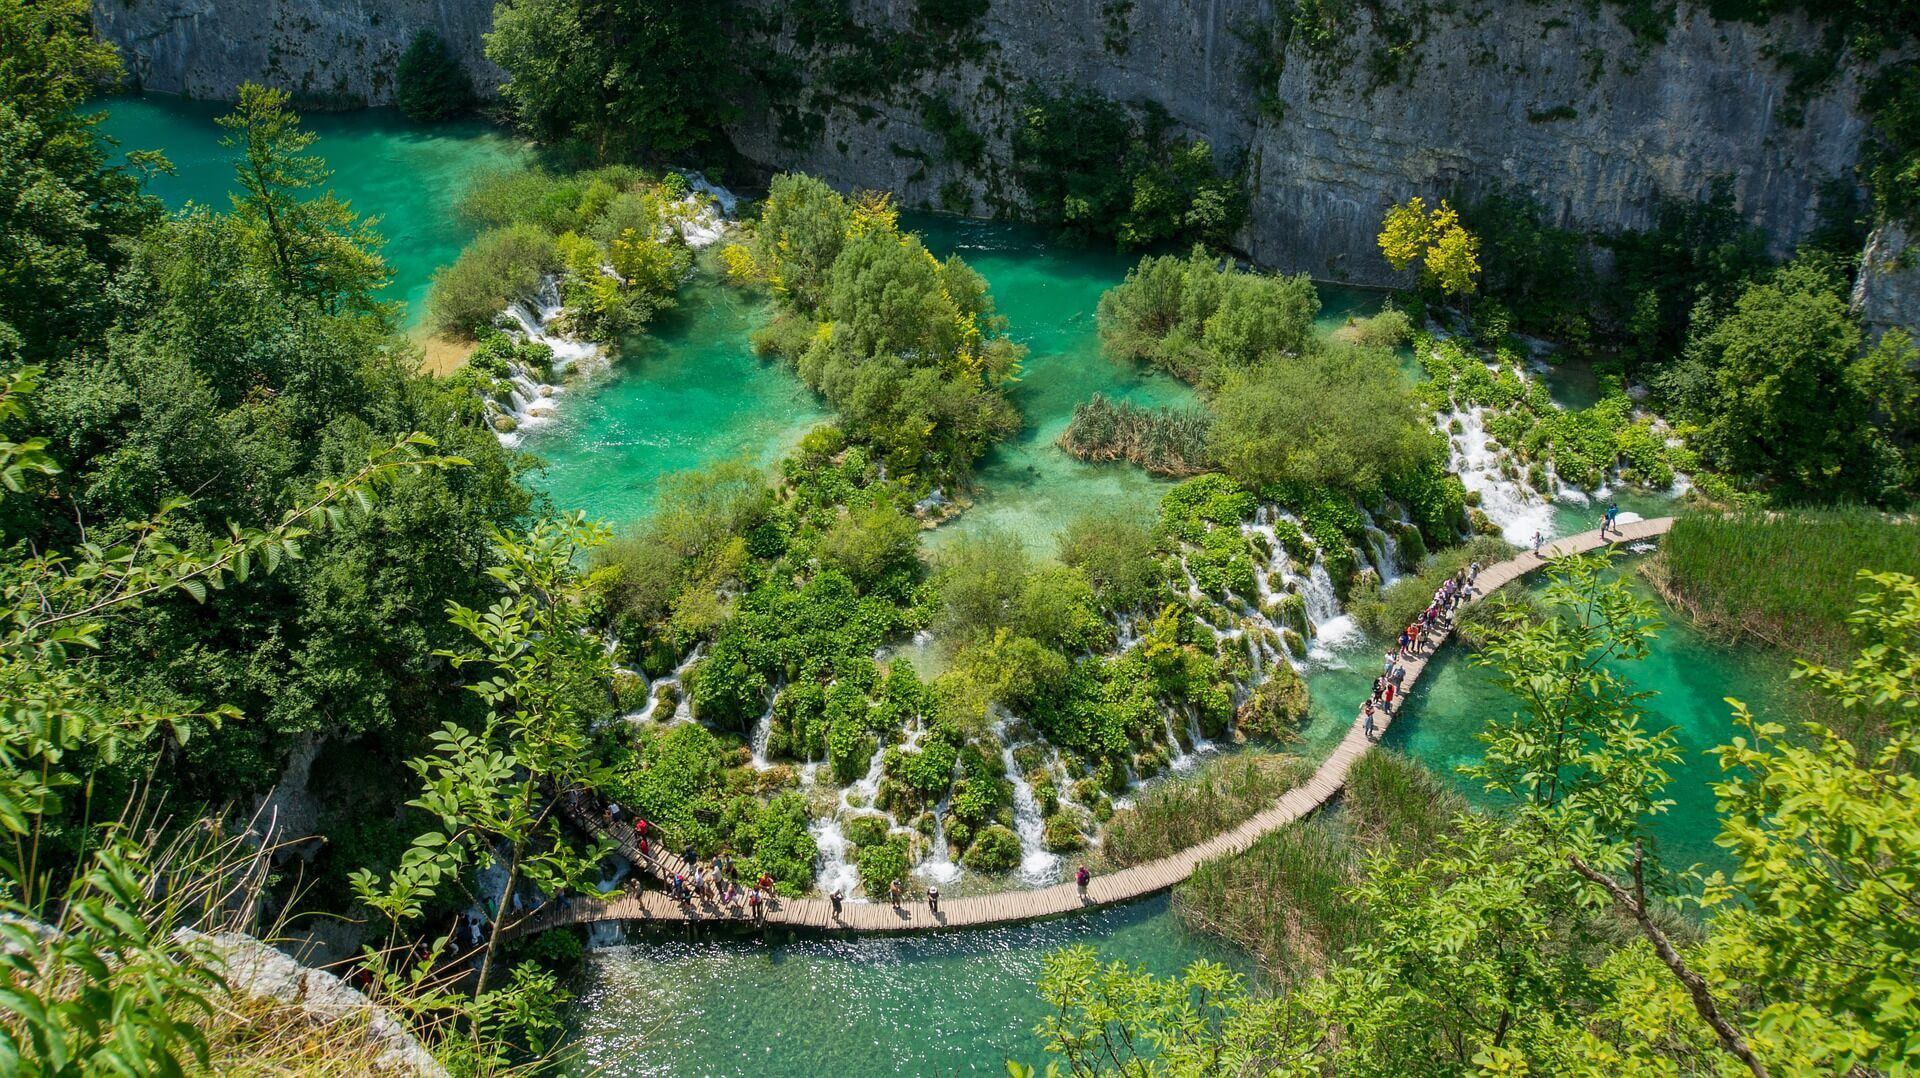 Plitvice Lakes NP - Adriatic Sea | Croatia Cruise Croatia Cruise